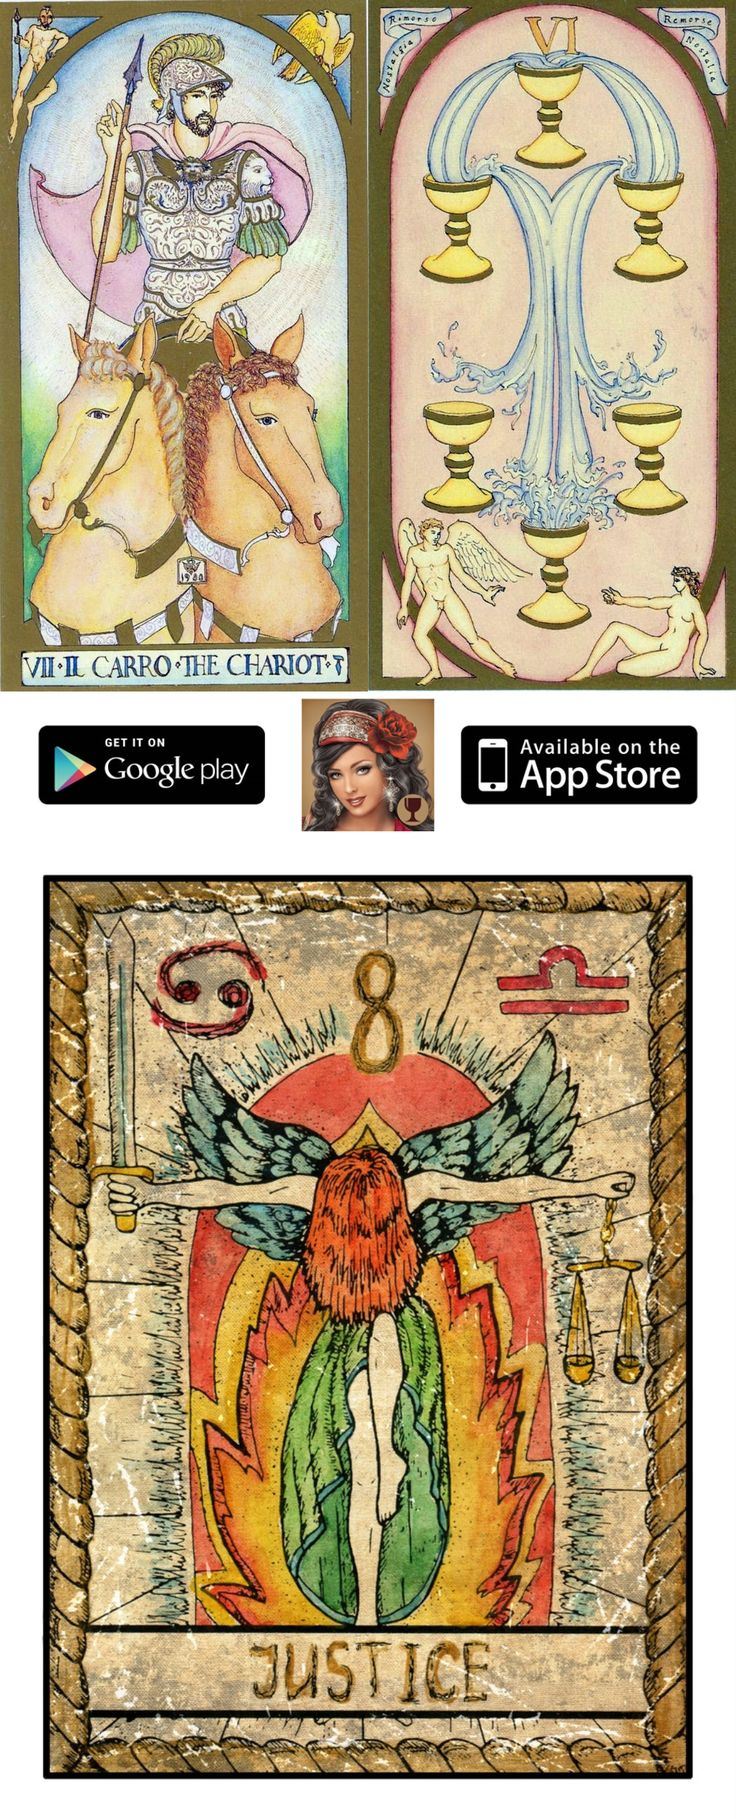 Get the free mobile app on your iOS and Android device and have fun. 3 card tarot reading, tarot scarf and free tarot predictions, tarot cards online free prediction and free accurate tarot. Best 2017 tarot art nouveau and cartomancy meanings playing cards. #pentacle #magician #spells #judgement #halloweencostume #androidgame